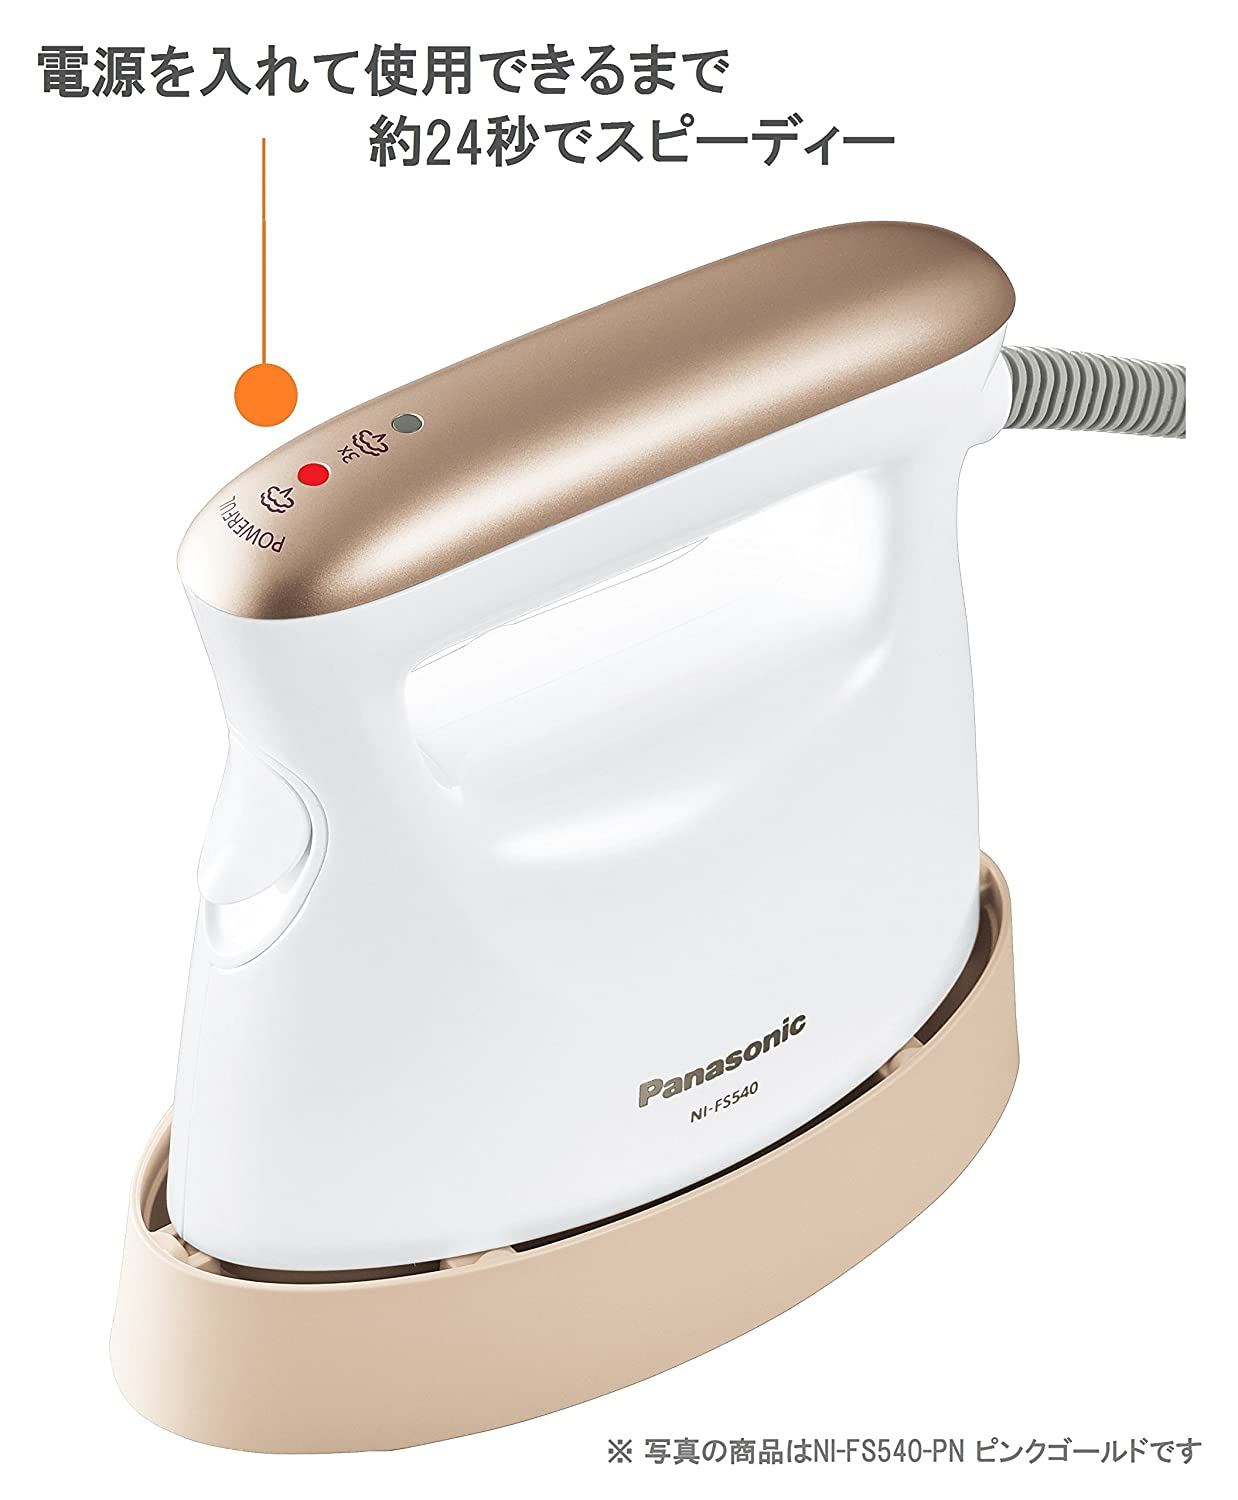 Panasonic Clothing Steamer NI-FS540-PN 【Japan Domestic genuine products】【Ships from JAPAN】 Pink Gold